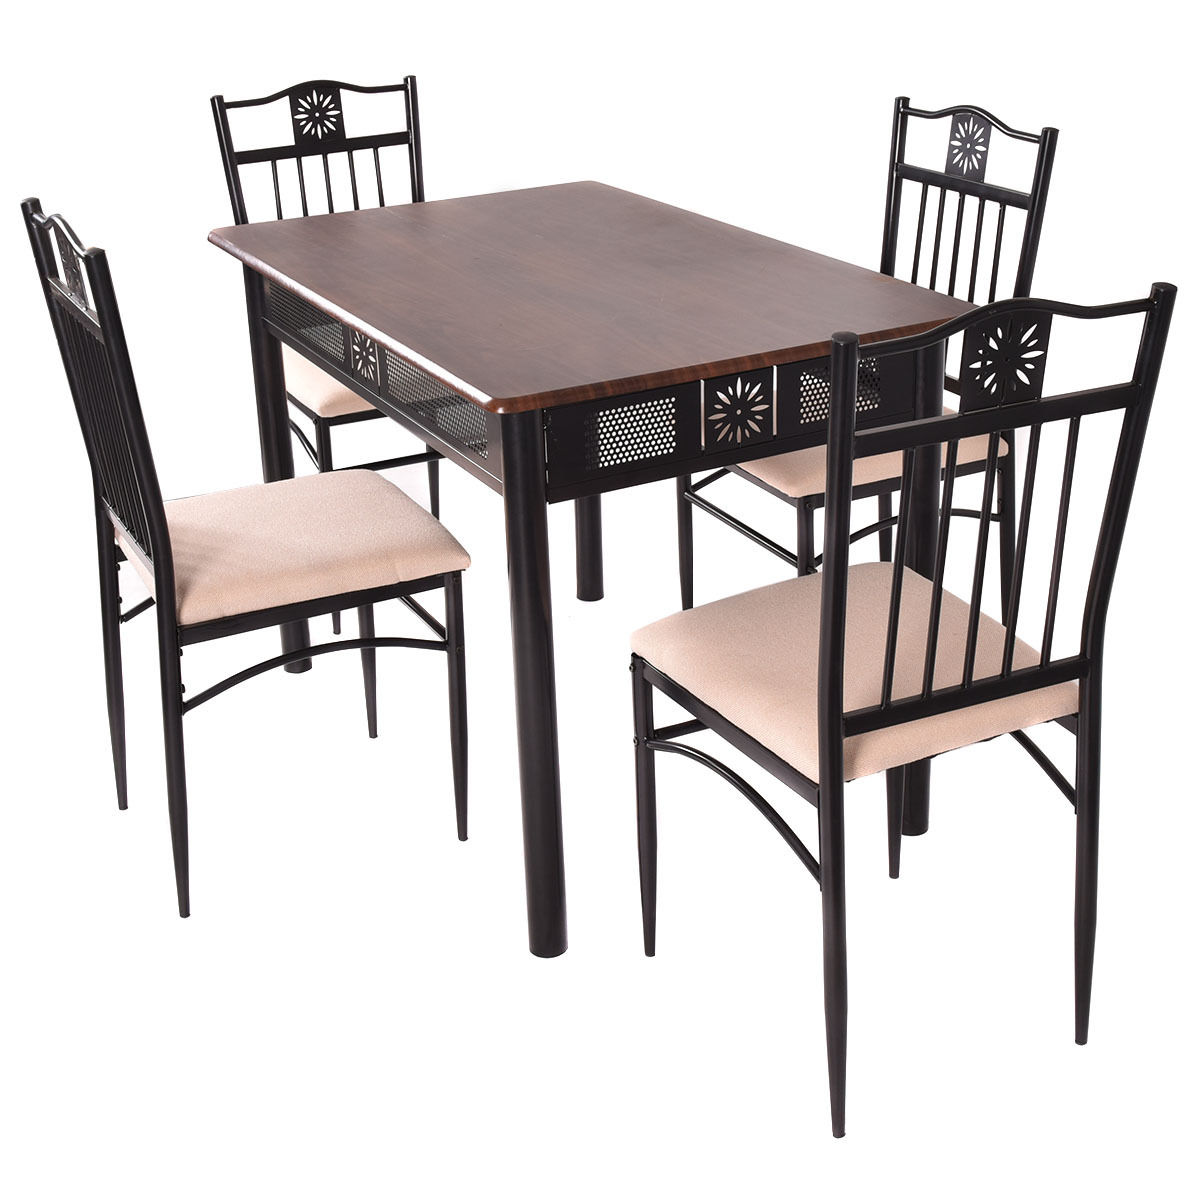 Breakfast Room Tables Costway 5 Piece Dining Set Wood Metal Table And 4 Chairs Kitchen Breakfast Furniture